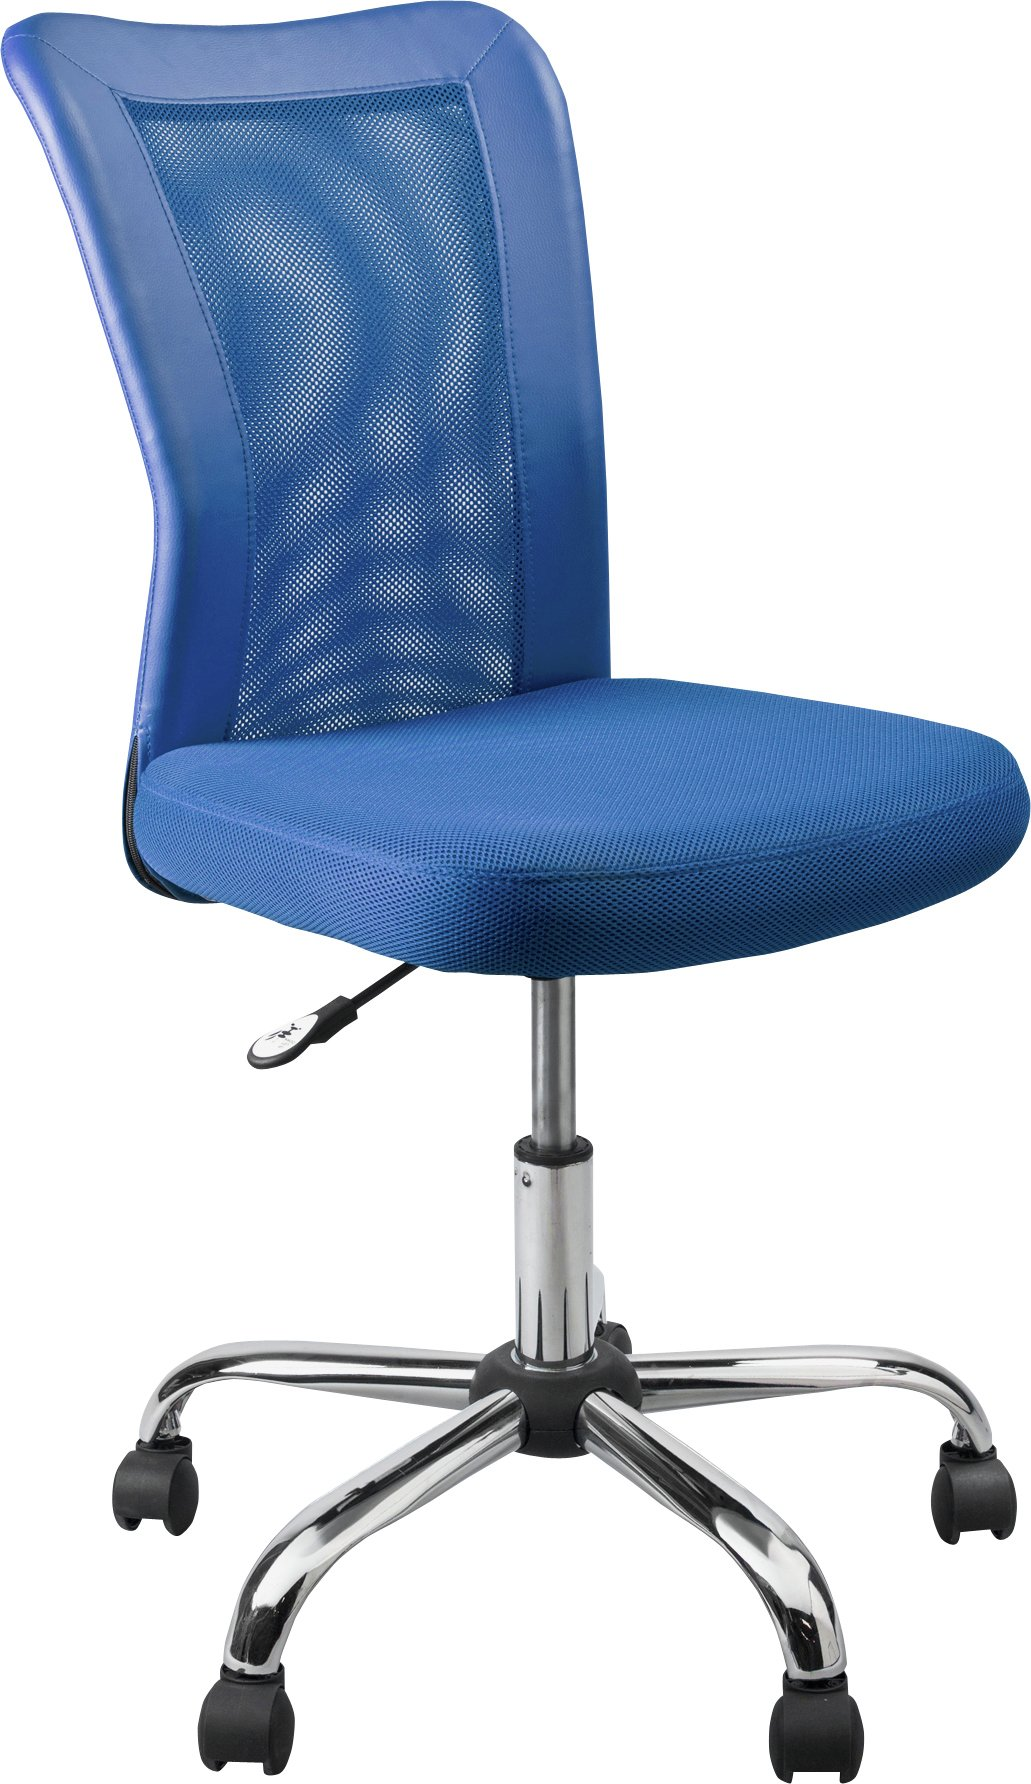 HOME Reade Mesh Gas Lift Adjustable fice Chair Blue